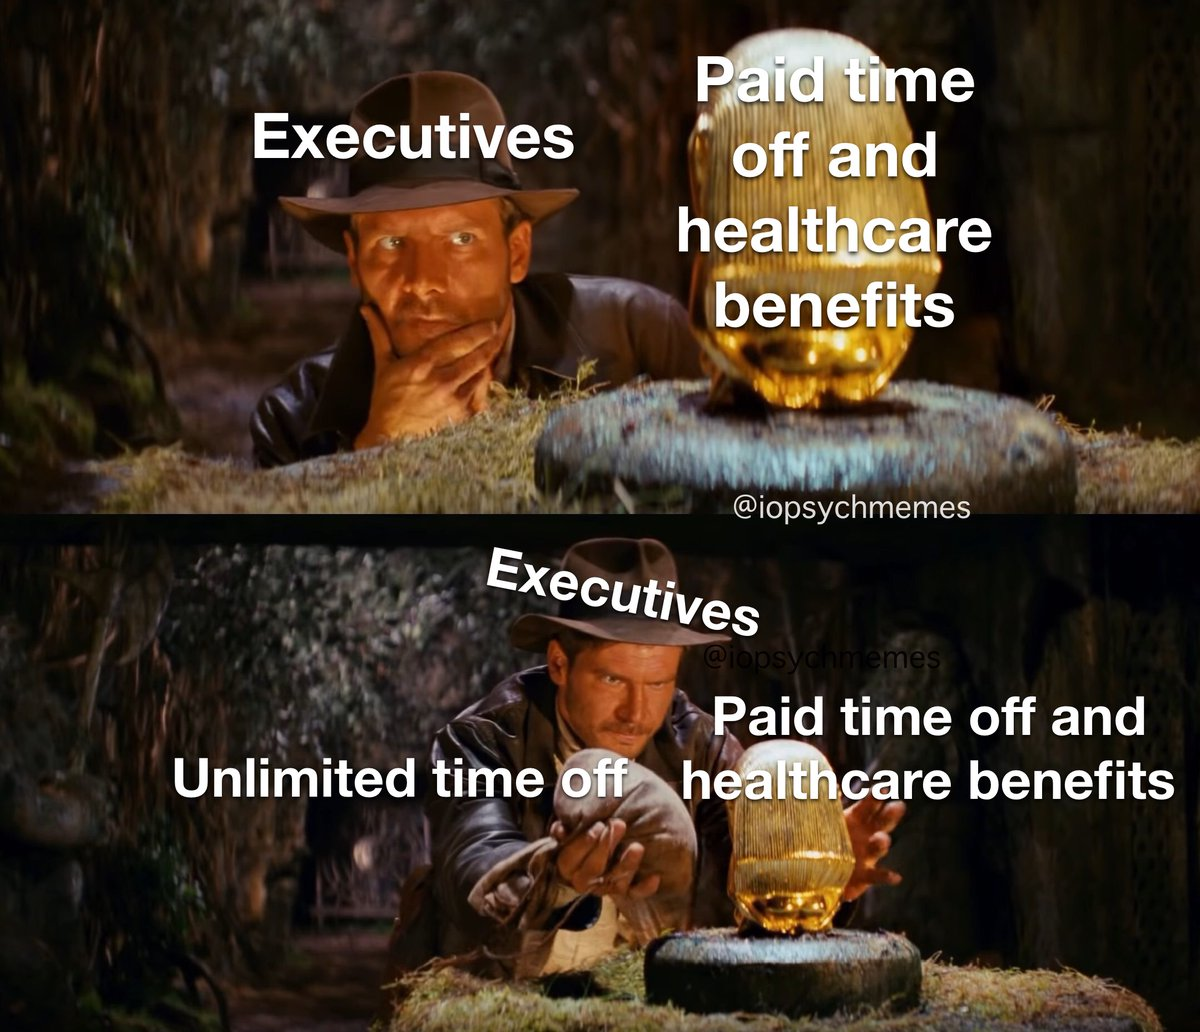 I O Psych Memes On Twitter Unlimited Vacation Time Sounds Awesome But It Comes At A Price Gigworkers Gigeconomy Ohpsych Iopsych Iopsychmemes Psychology Psychologymemes Psychmemes Appsych Tx Dr Lbarber For Help On This Meme